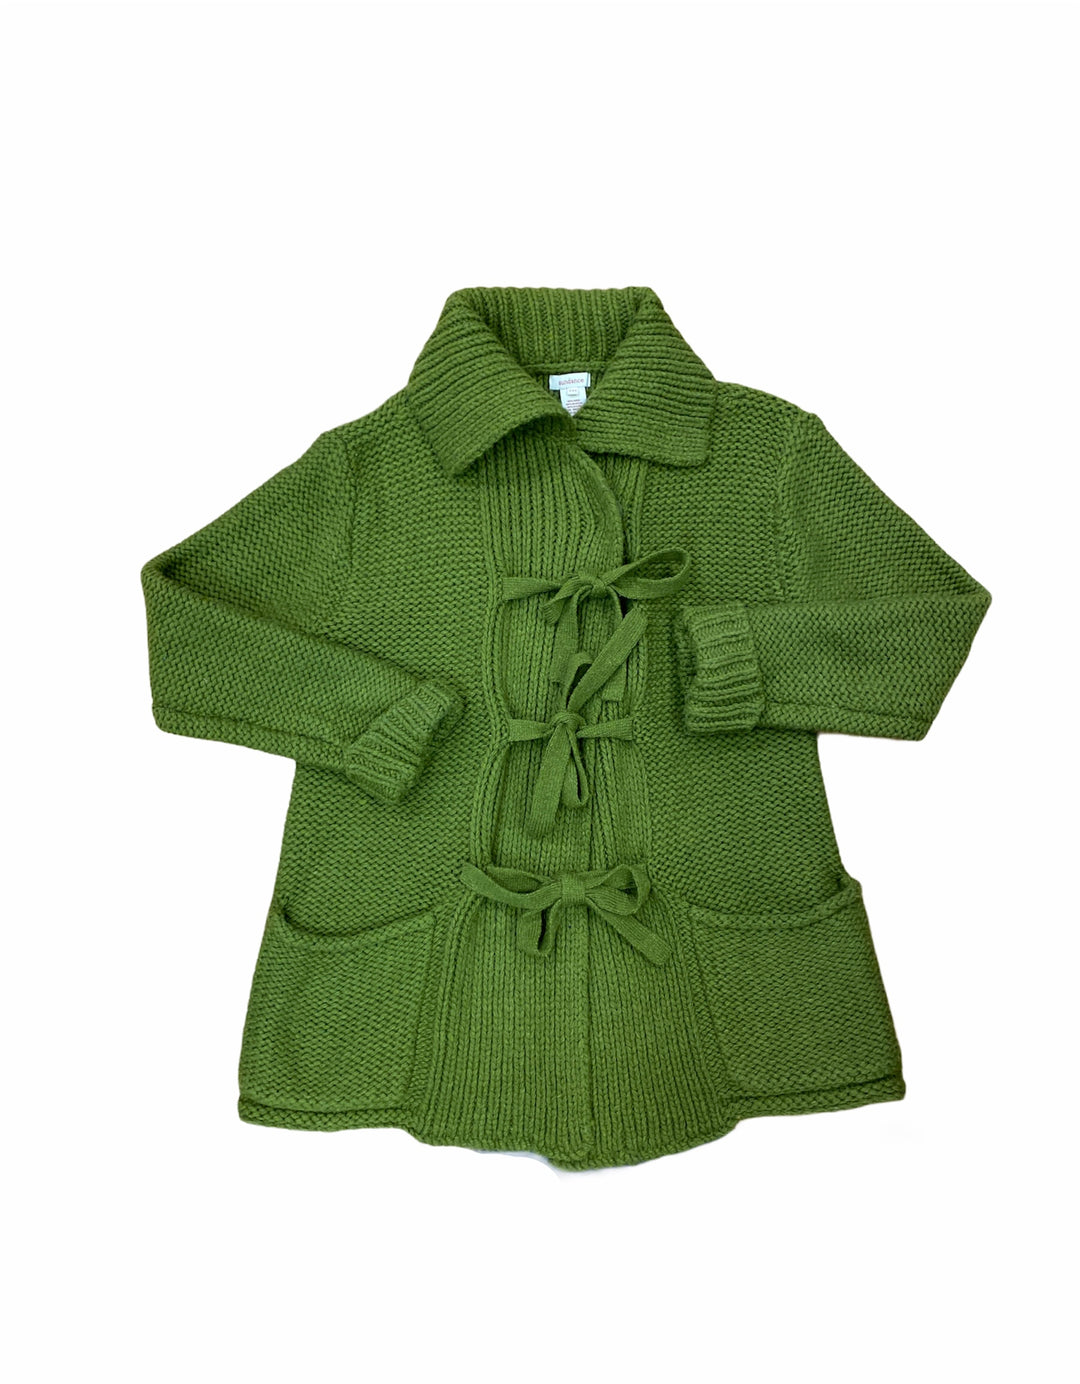 Primary Photo - BRAND: SUNDANCE <BR>STYLE: SWEATER CARDIGAN HEAVYWEIGHT <BR>COLOR: GREEN <BR>SIZE: PETITE  MEDIUM <BR>SKU: 223-22318-117626